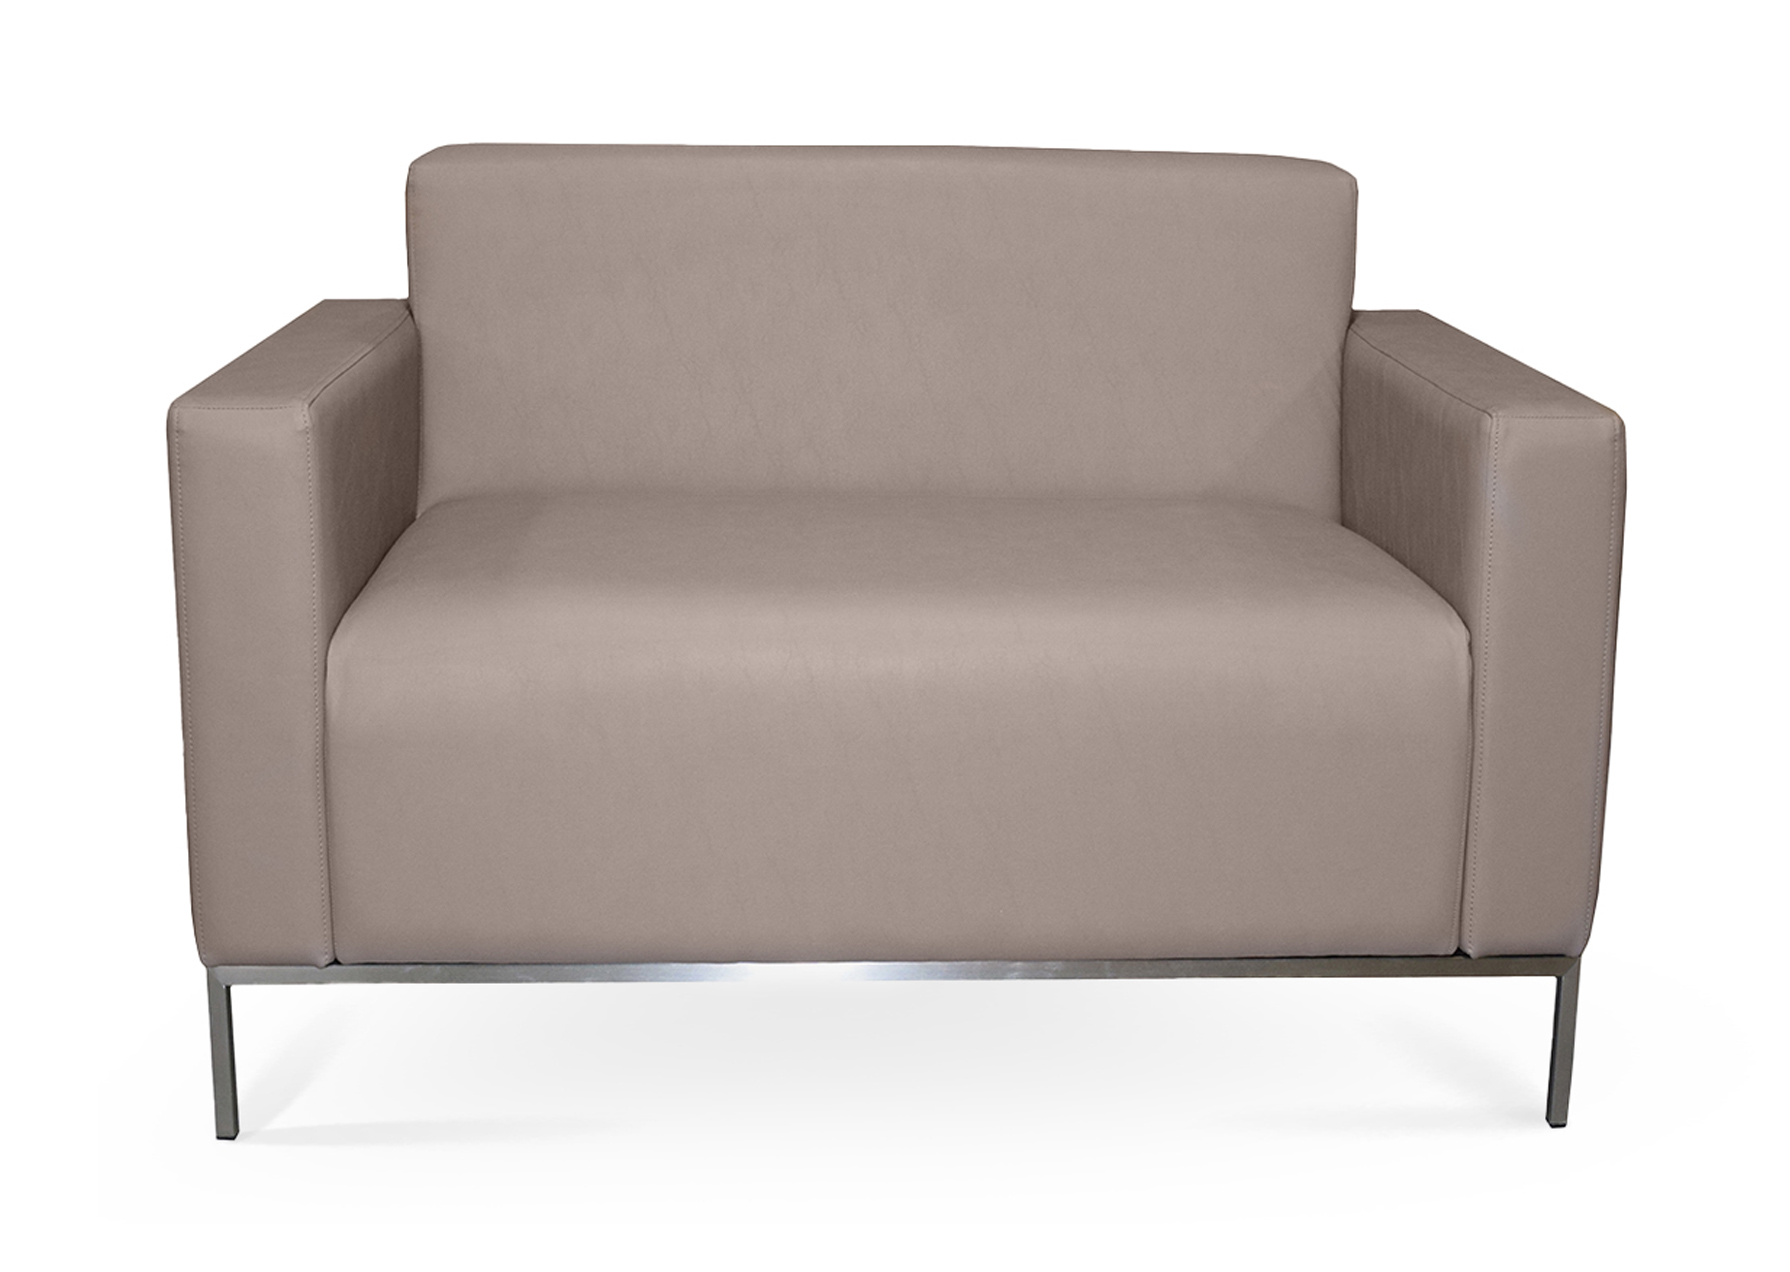 Loveseat-F